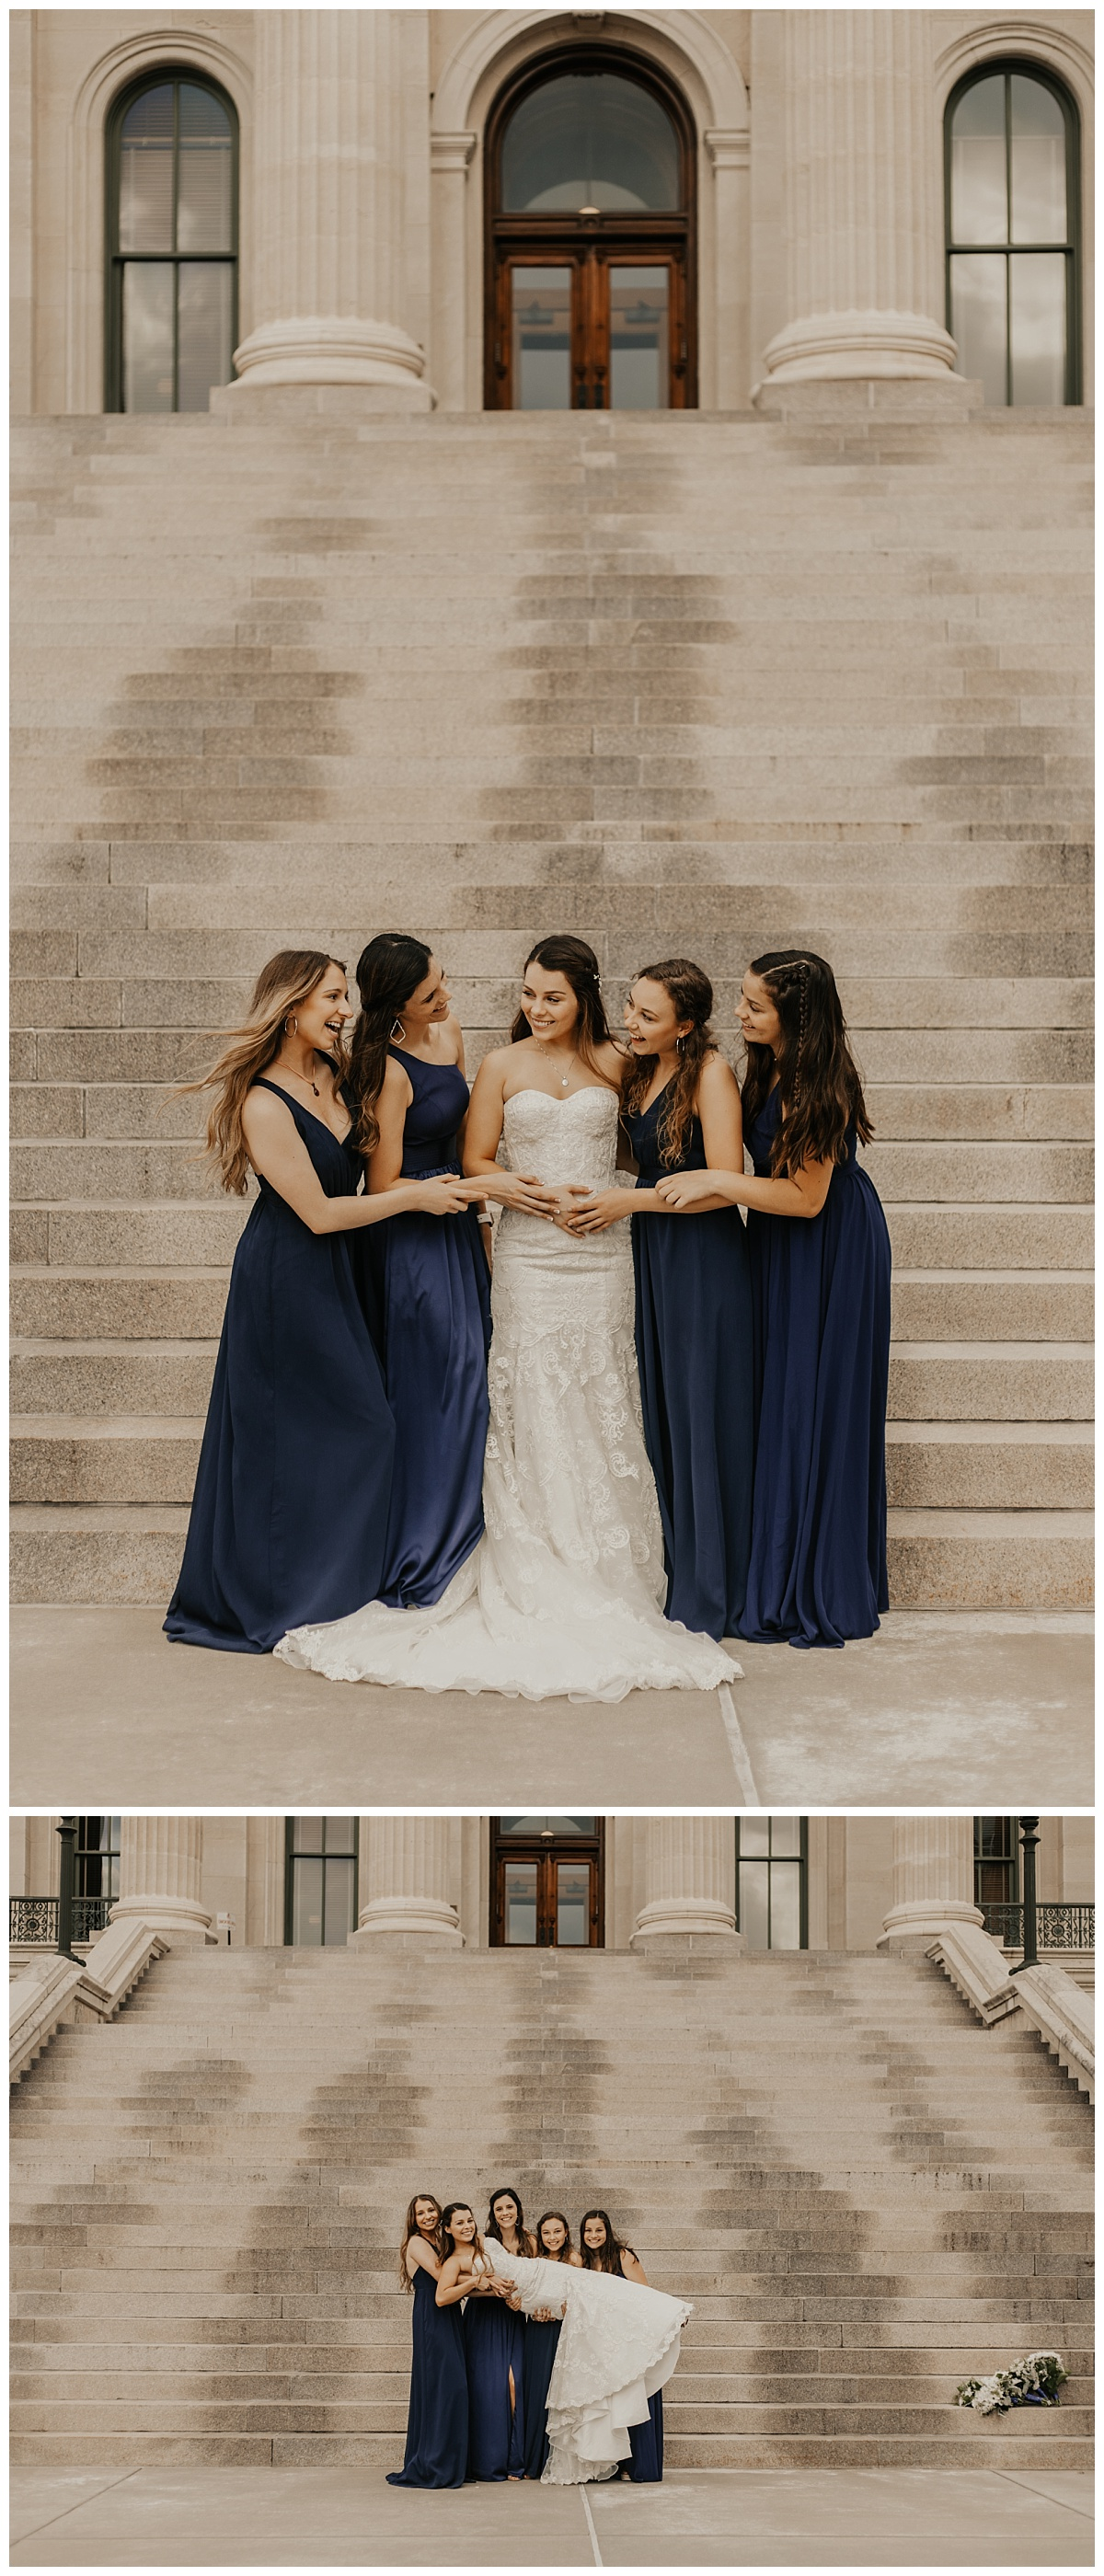 Urban Wedding | Kansas City Wedding Photographer | City Wedding | Minimalist Wedding | San Diego Wedding Photographer | Southern California Wedding Photographer